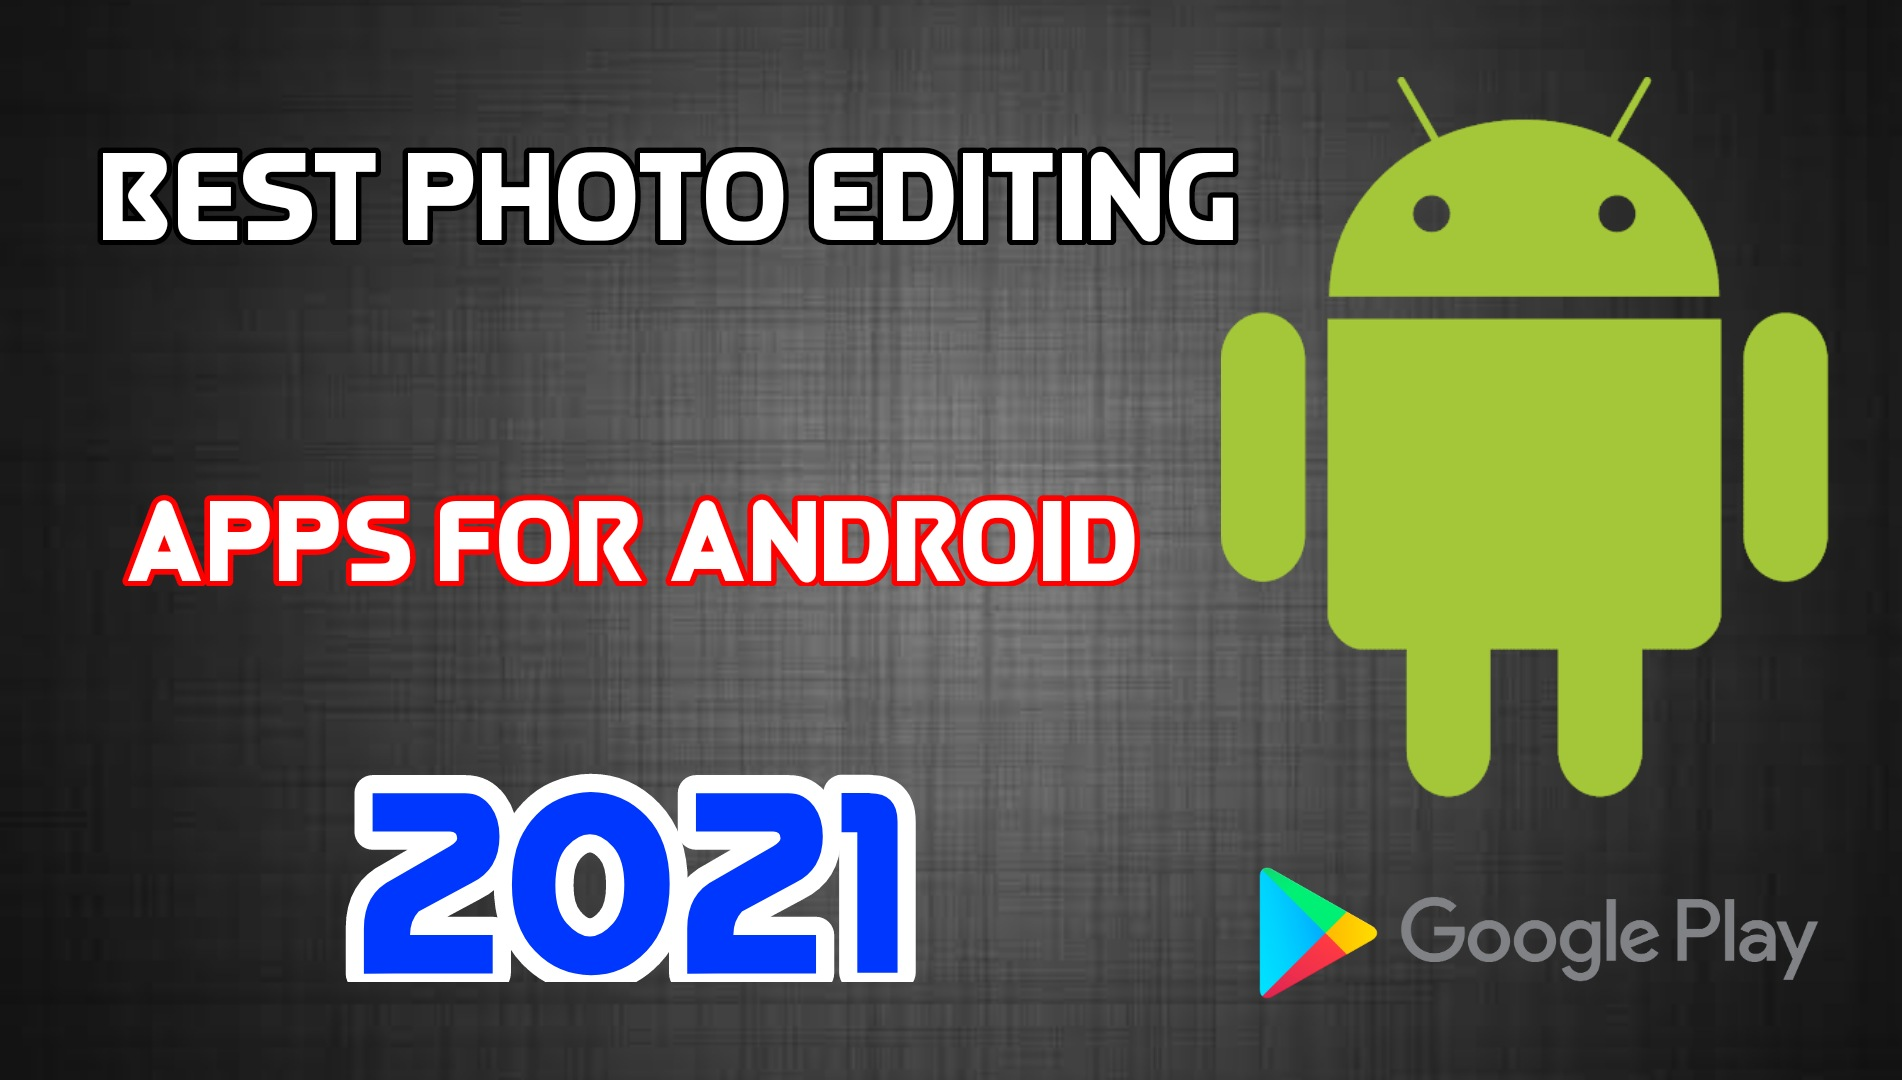 Top 3 Best Photo Editing Apps for Android 2021